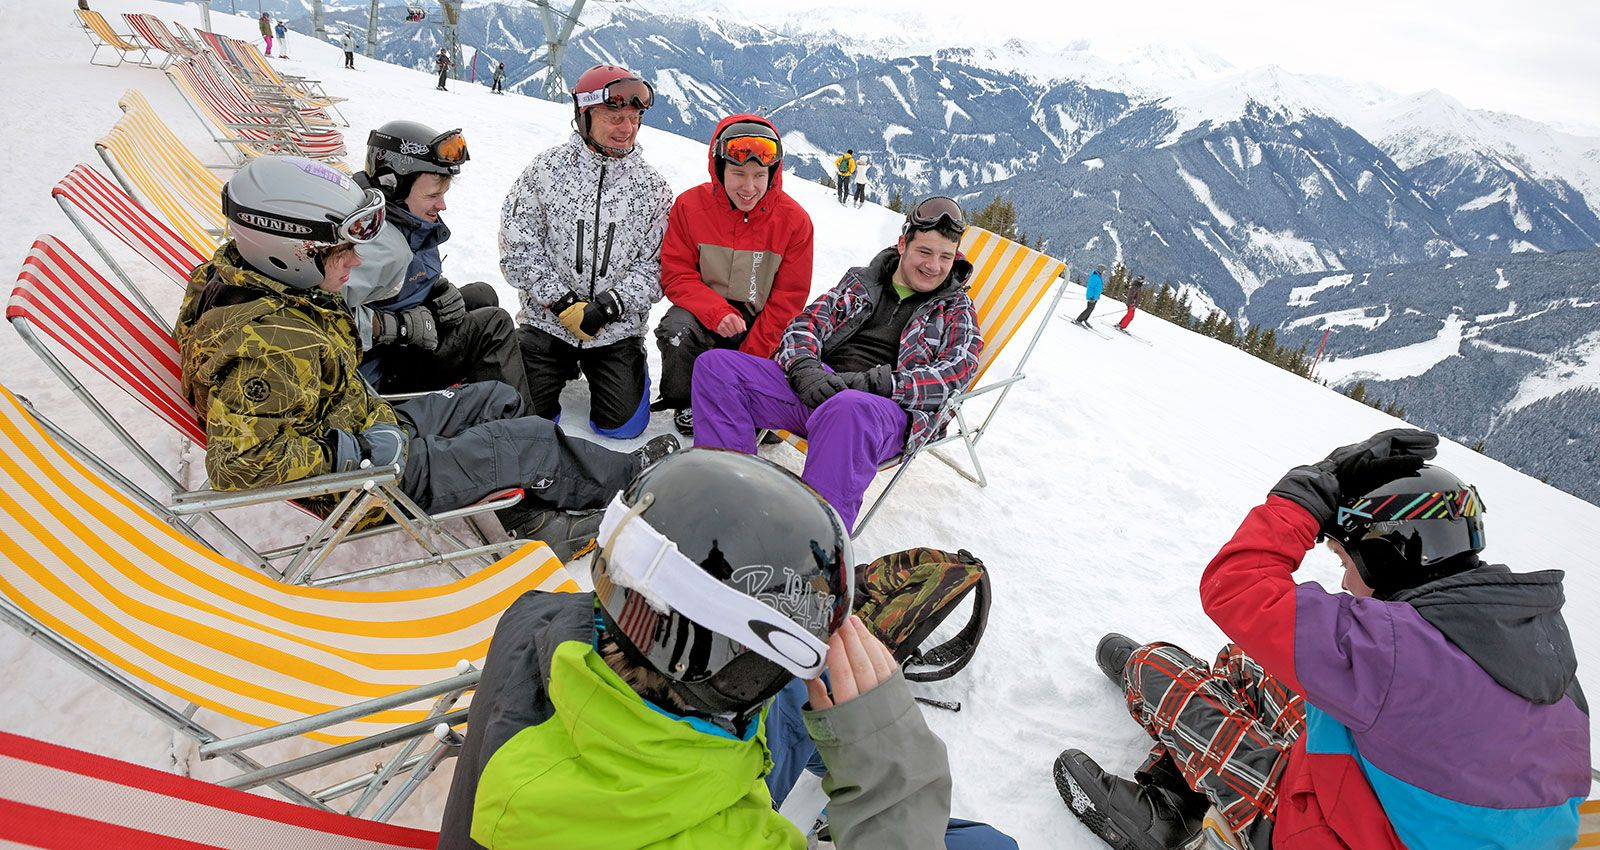 Ski group taking a break